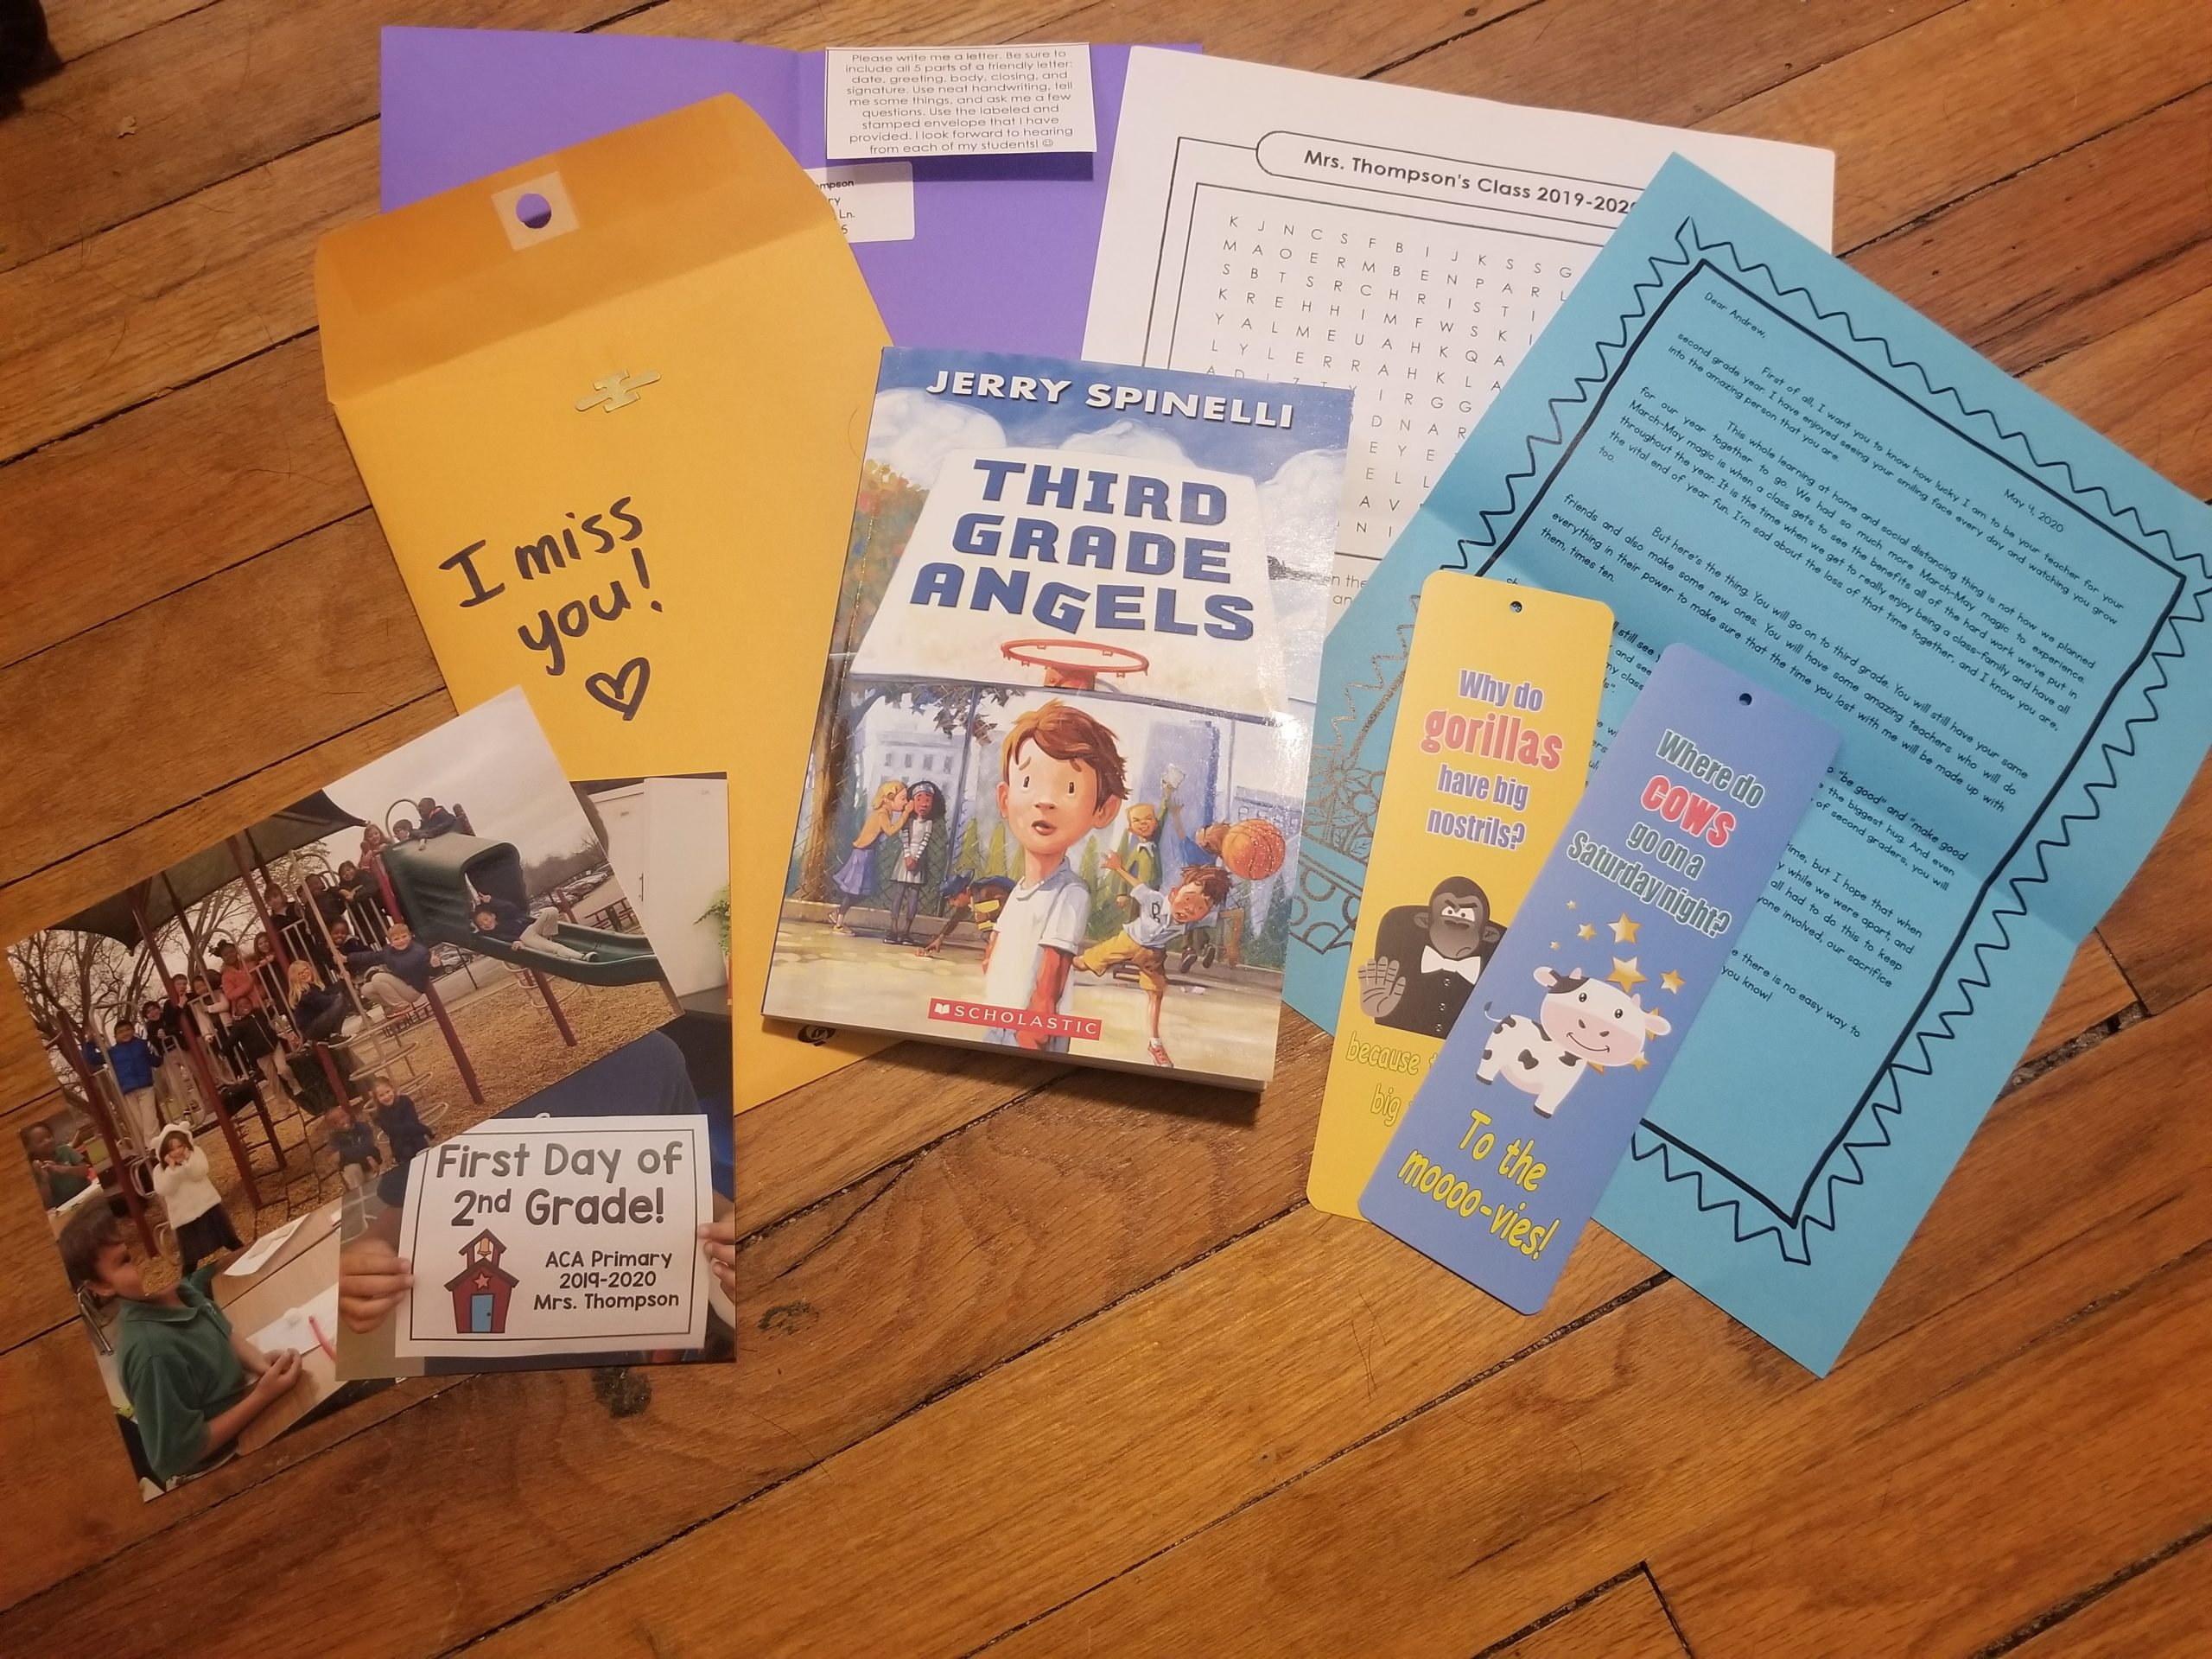 A care package with a book called Third Grade Angels, a book mark, a letter, a wordsearch, and pictures.